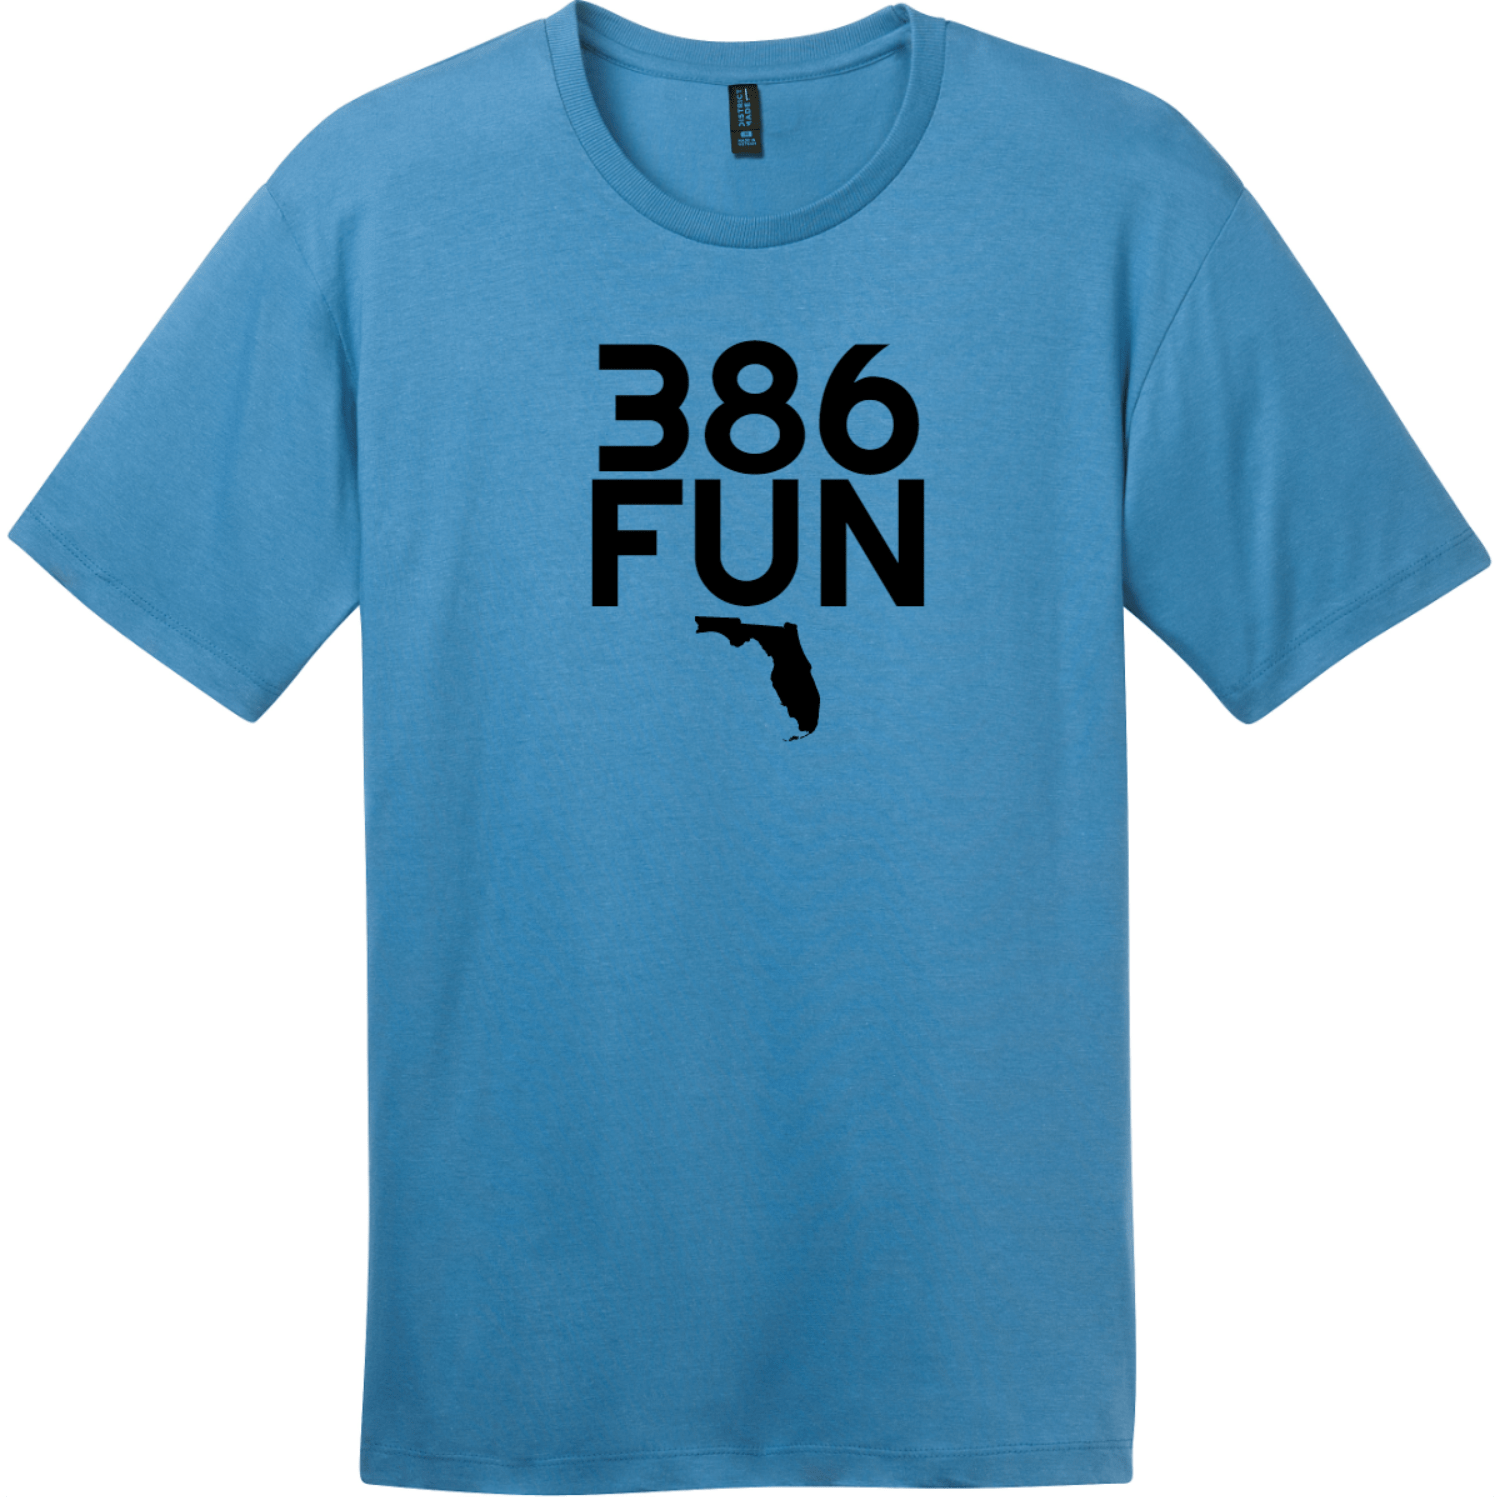 386 Fun Florida T-Shirt Clean Denim District Perfect Weight Tee DT104